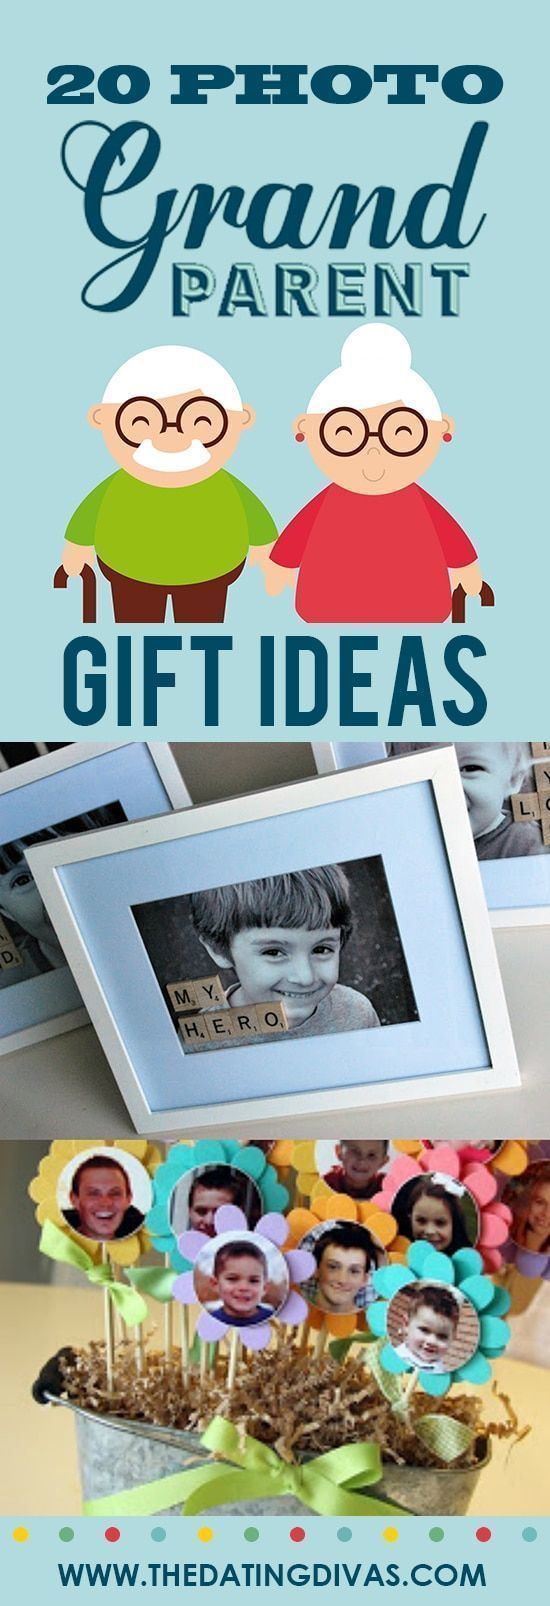 101 Grandparents Day Ideas - From #bestgiftsforgrandparents Photo gift ideas for Grandparents Day - Easy DIY Crafts and activities for kids to make for their Grandparents - perfect personalized photo presents for adapting to Grandma, Grandpa, Nana, Pop, Papa, Grammy...  #datingdivas #grandparentsday #photopresents #grandparentsdaycrafts